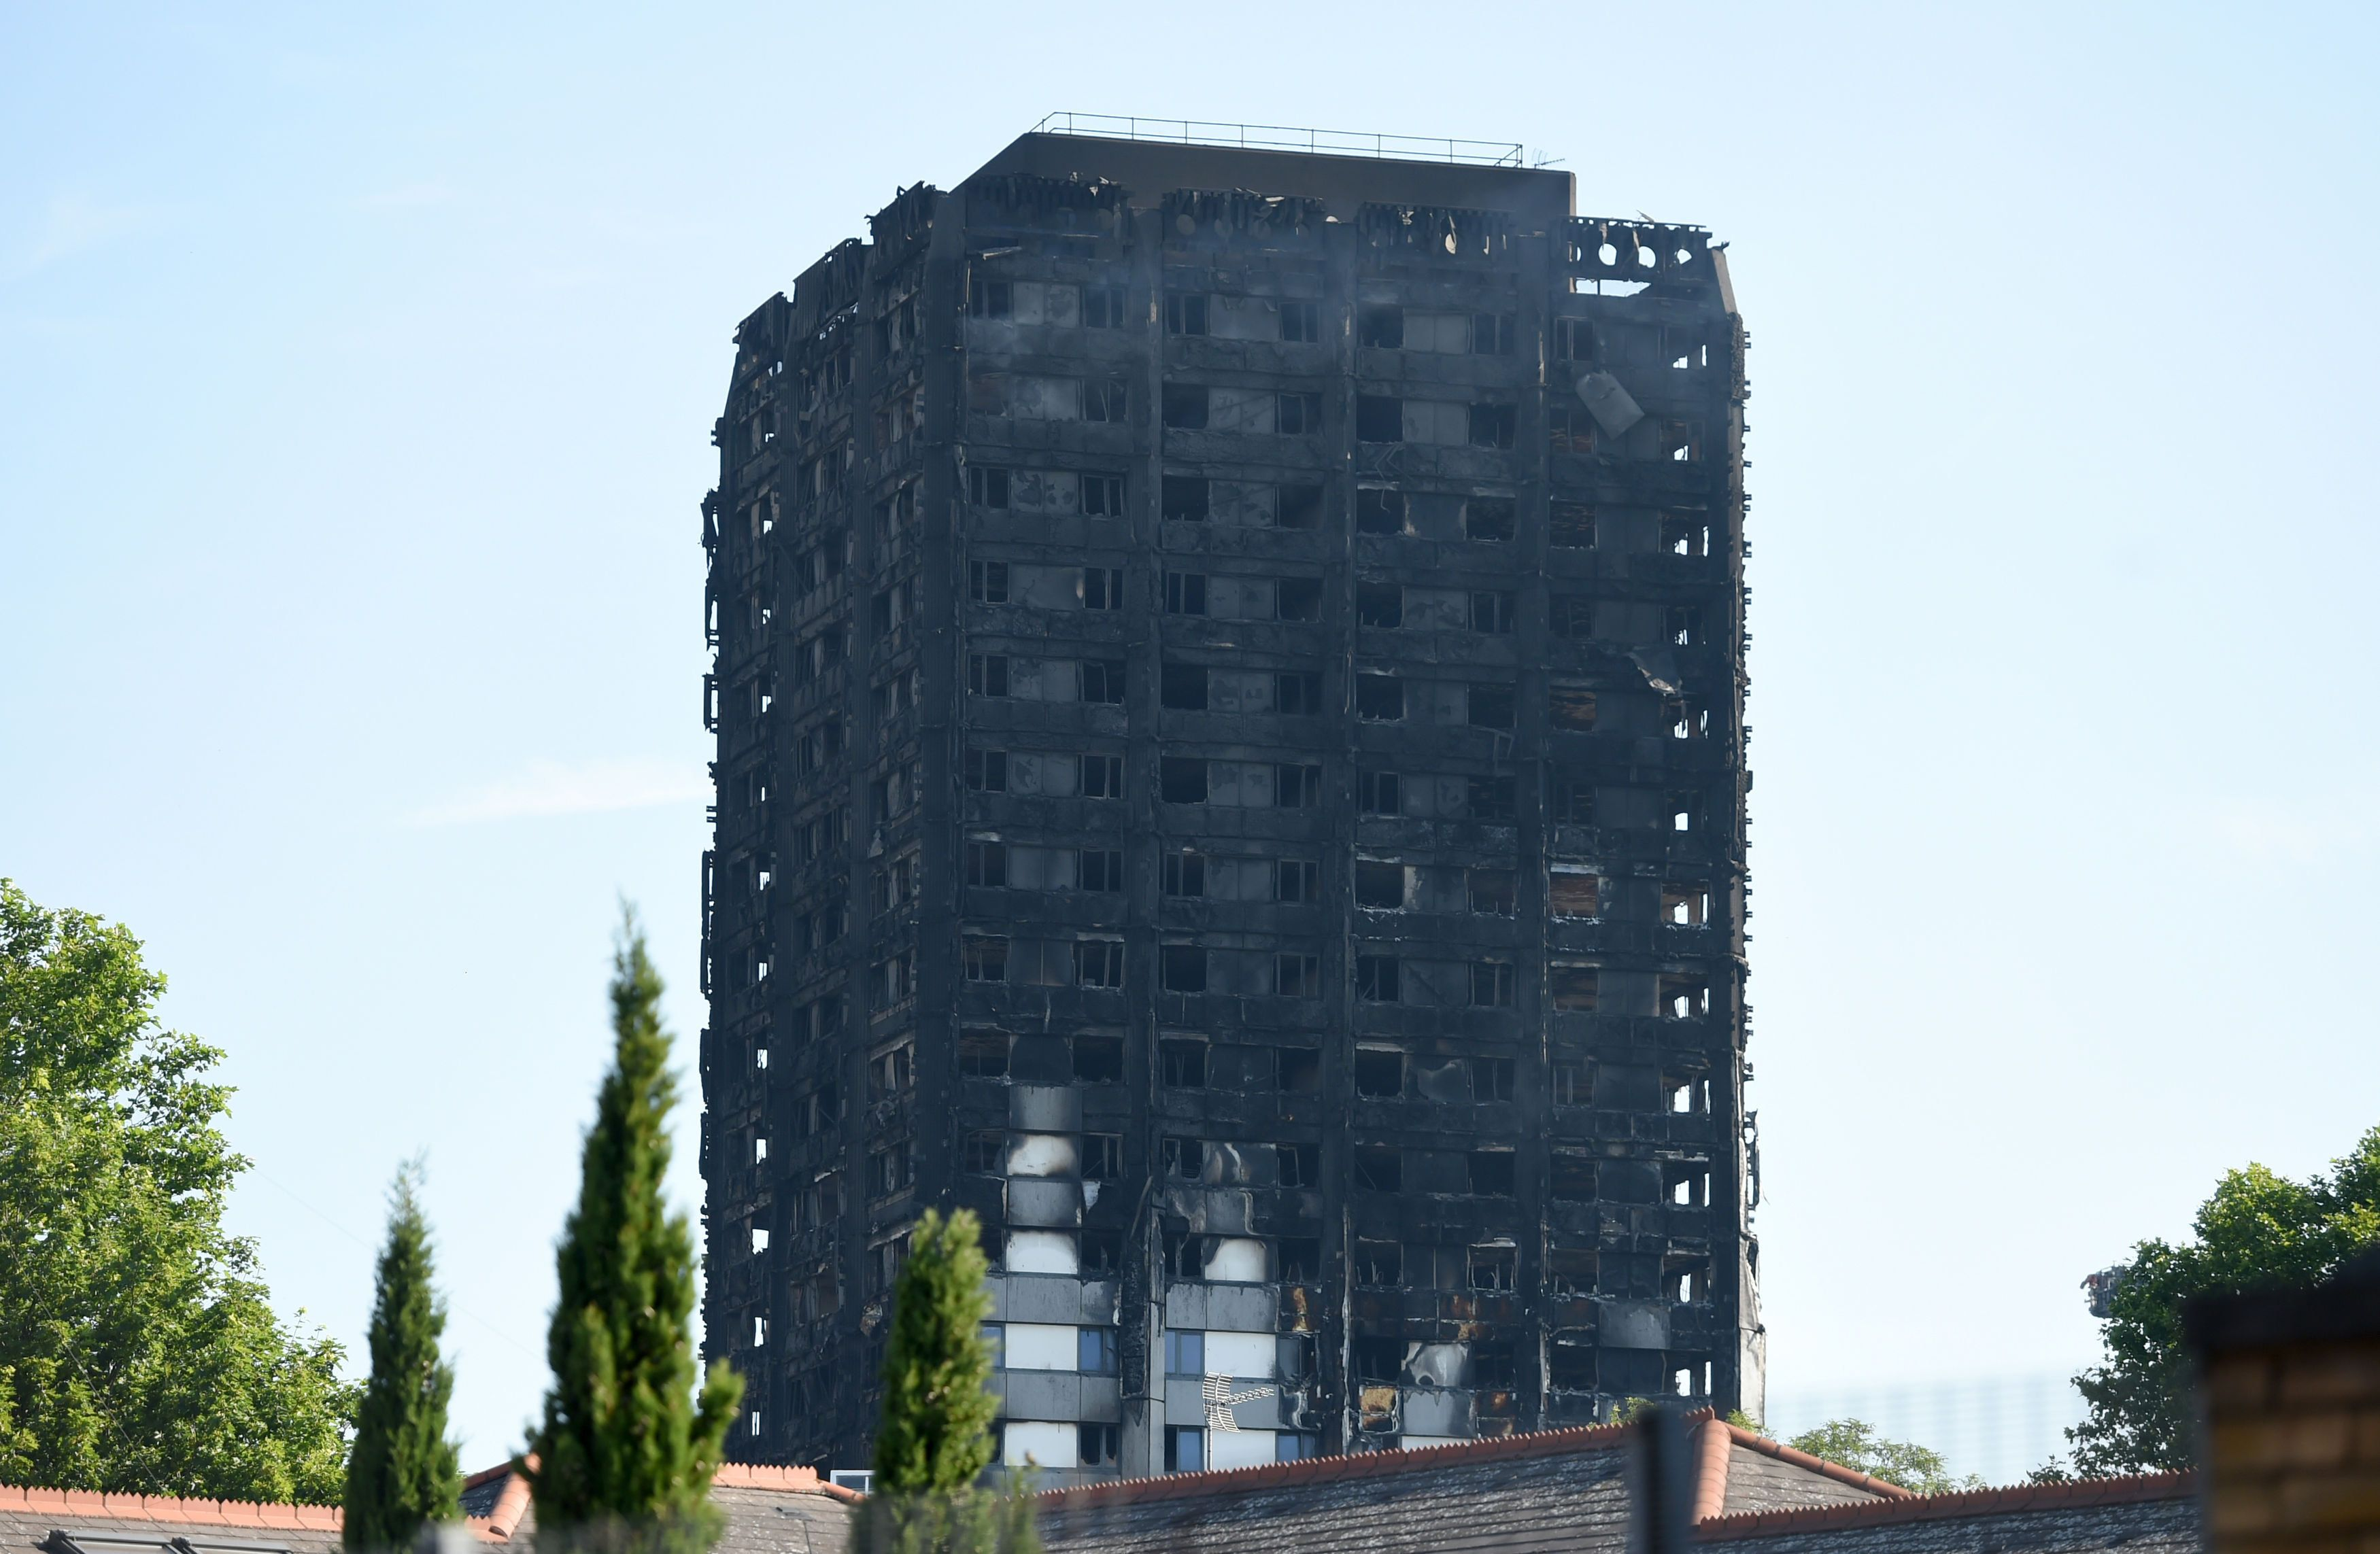 Fire Doors Removed From Sale Following Safety Tests In Wake Of Grenfell Tower